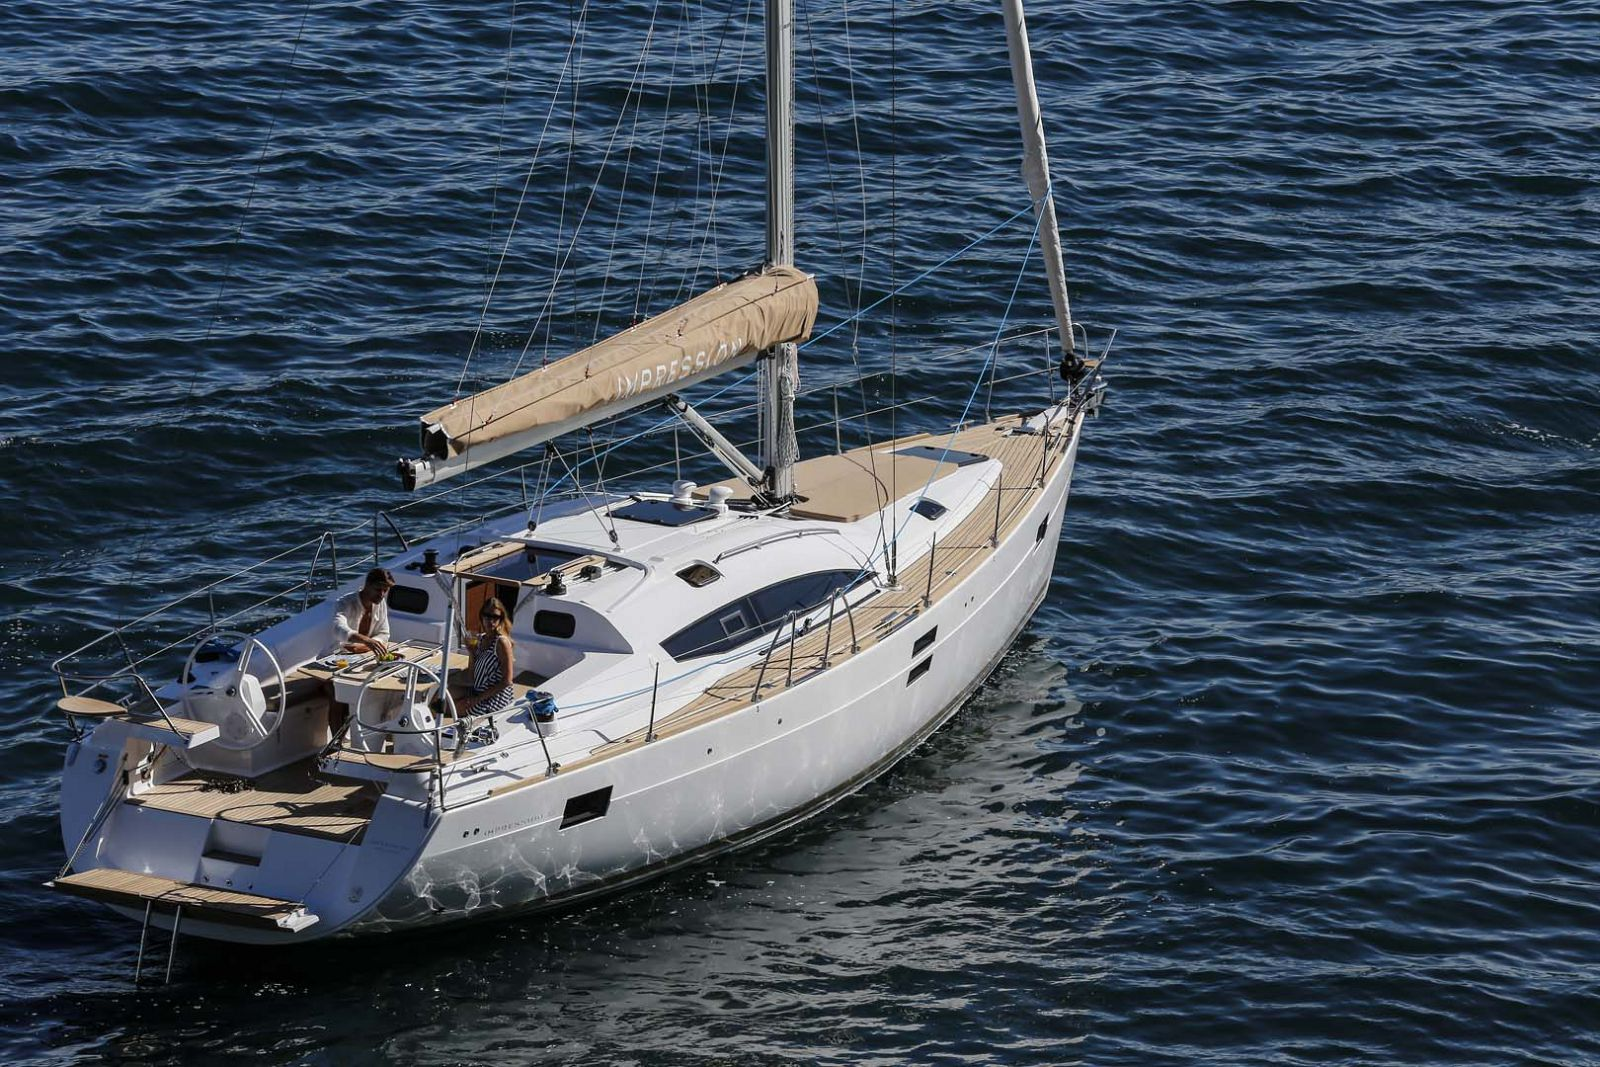 Elan-Yachts-Impression-45-Sailboat-Overhead